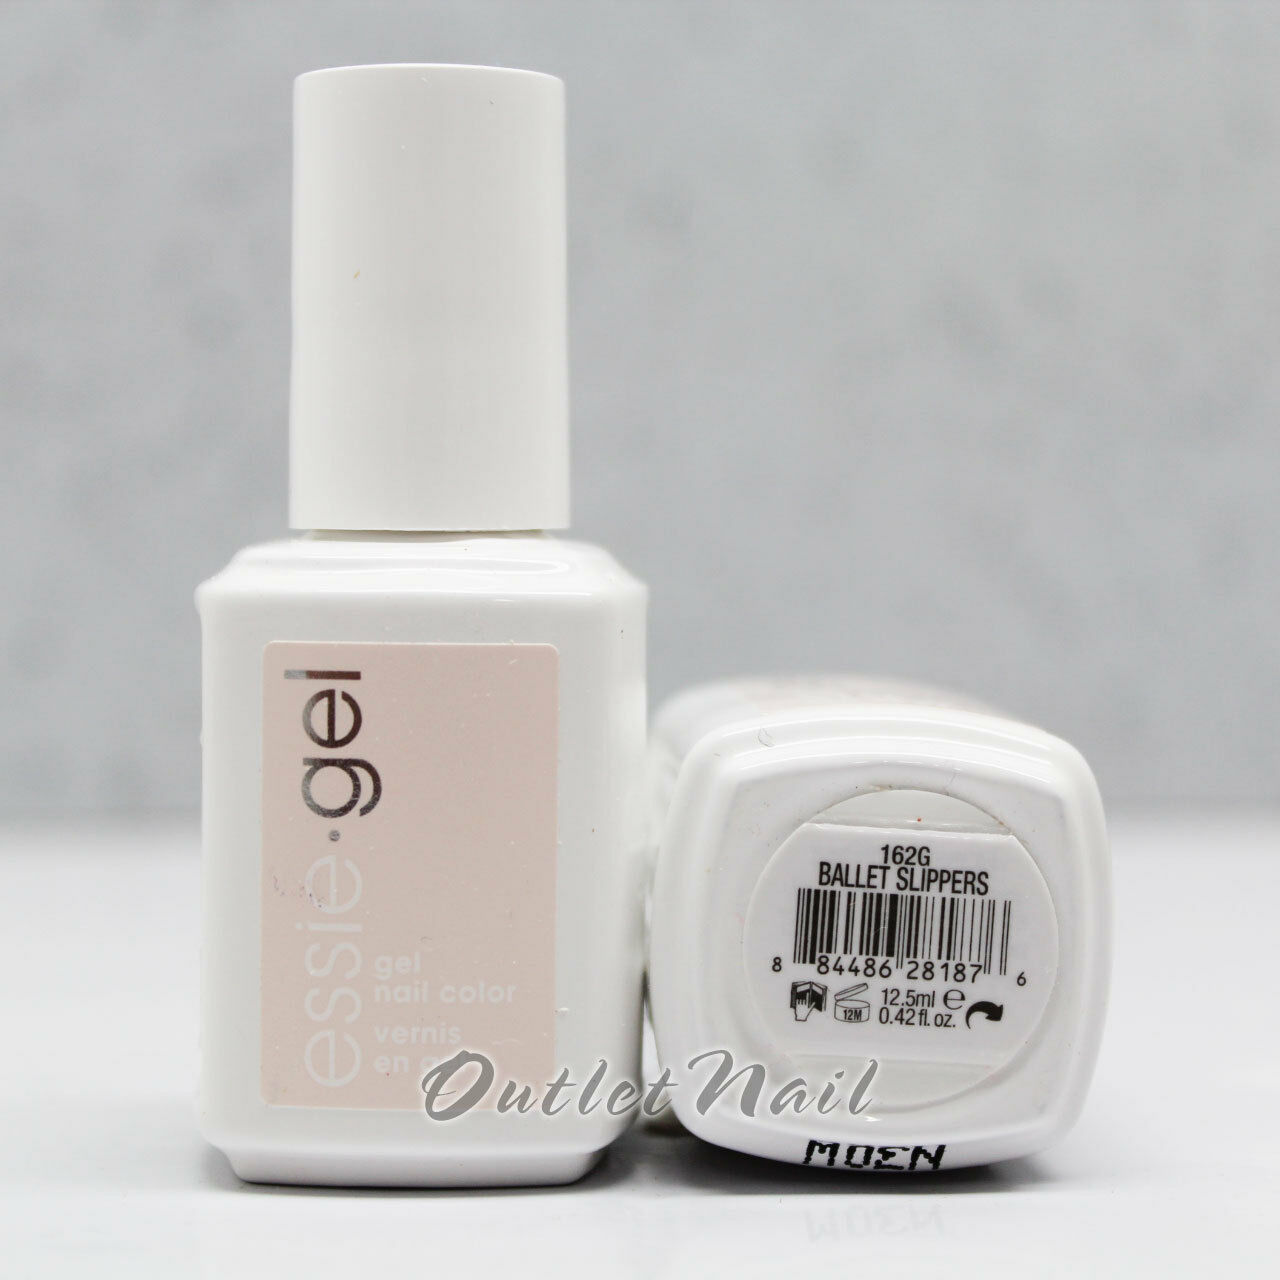 Essie soak off uv led gel nail polish ballet slippers 162g dance picture 1 of 1 parisarafo Images